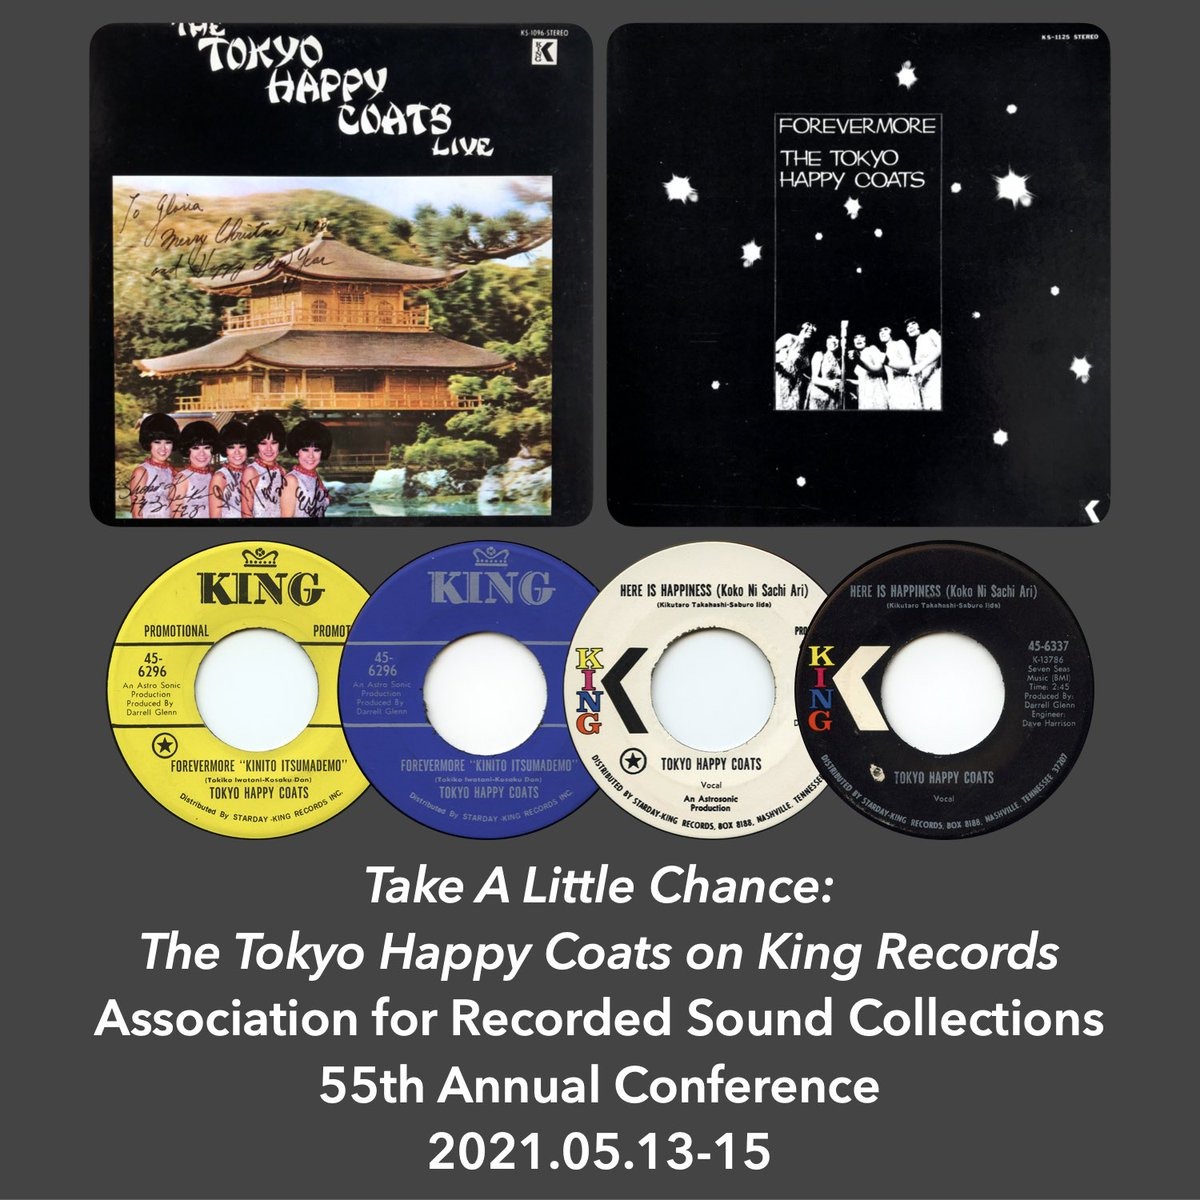 """This week! """"Take A Little Chance: The Tokyo Happy Coats on King Records"""" will be presented as part of the """"Asian Artists & Recordings"""" panel at the @arscaudio 2021 Virtual Conference. The panel is scheduled for 15 May 2021 at 6:15-7:45 PM EDT USA. https://t.co/ypOuW5F6tK"""